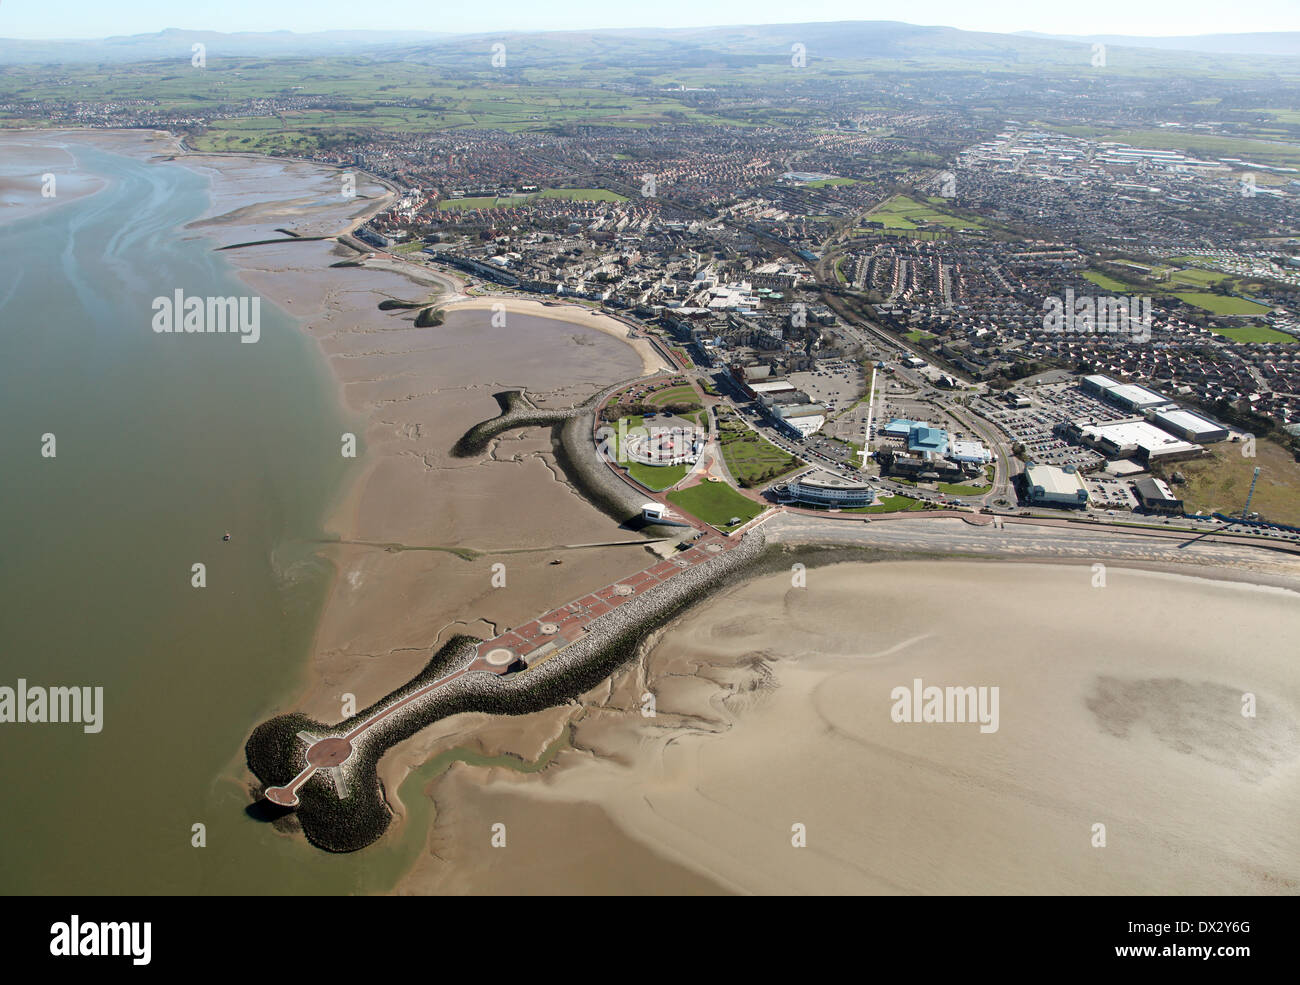 aerial view of Morecambe town and seafront, sea defences and beaches in Lancashire - Stock Image